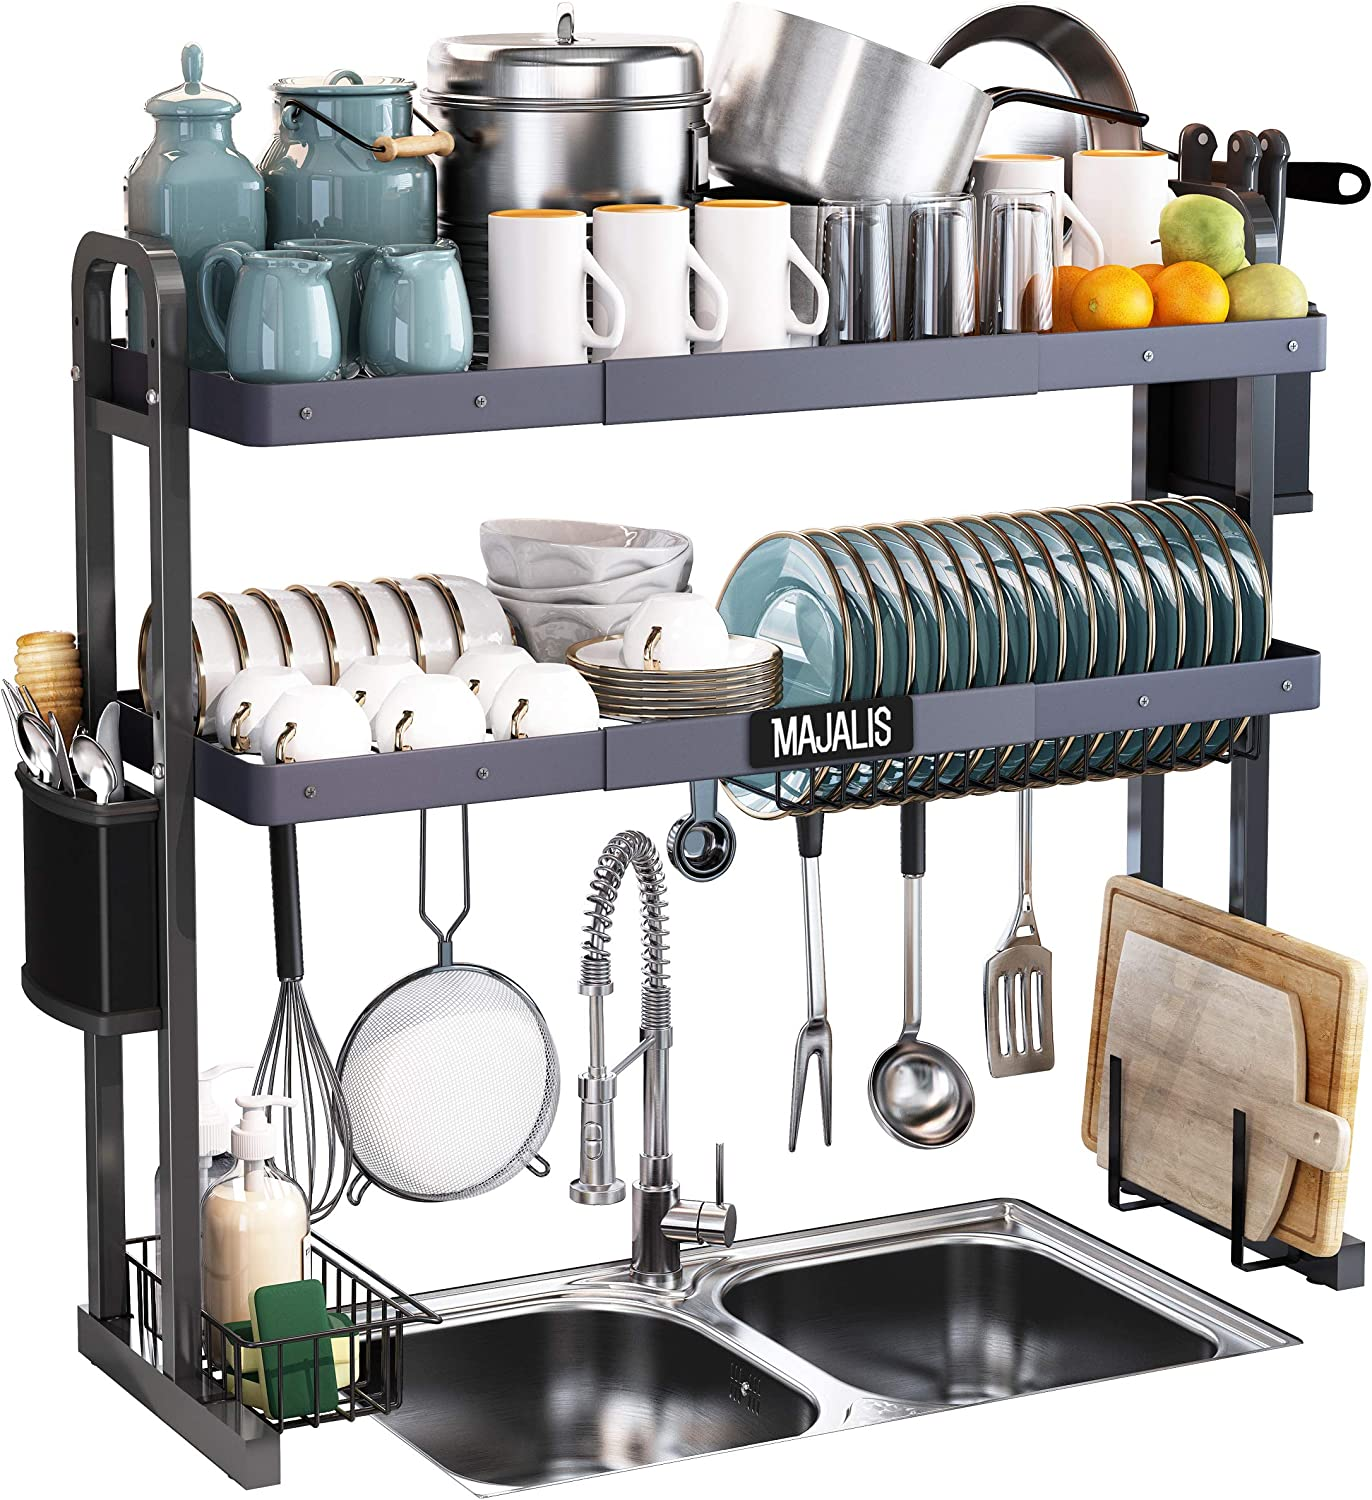 Amazon Com Over The Sink Dish Drying Rack Majalis Stainless Steel 2 Tier Large Dish Drainer Above Sink Adjustable 27 5 33 5 Expandable Kitchen Counter Organizer Storage Space Saver Shelf With 6 Hooks